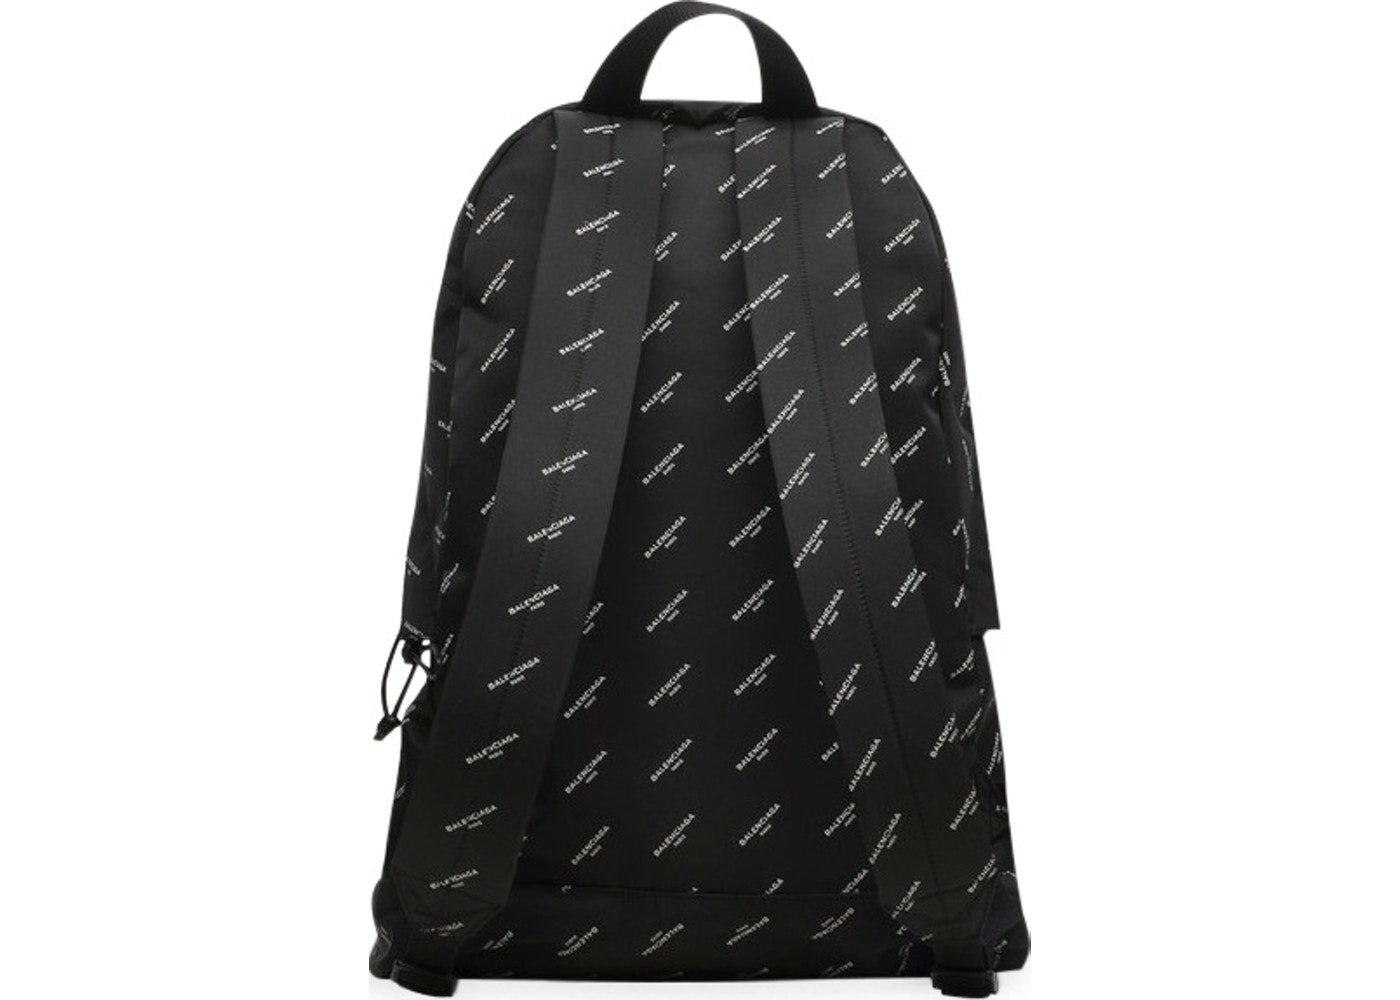 Balenciaga explorer backpack logos large black white